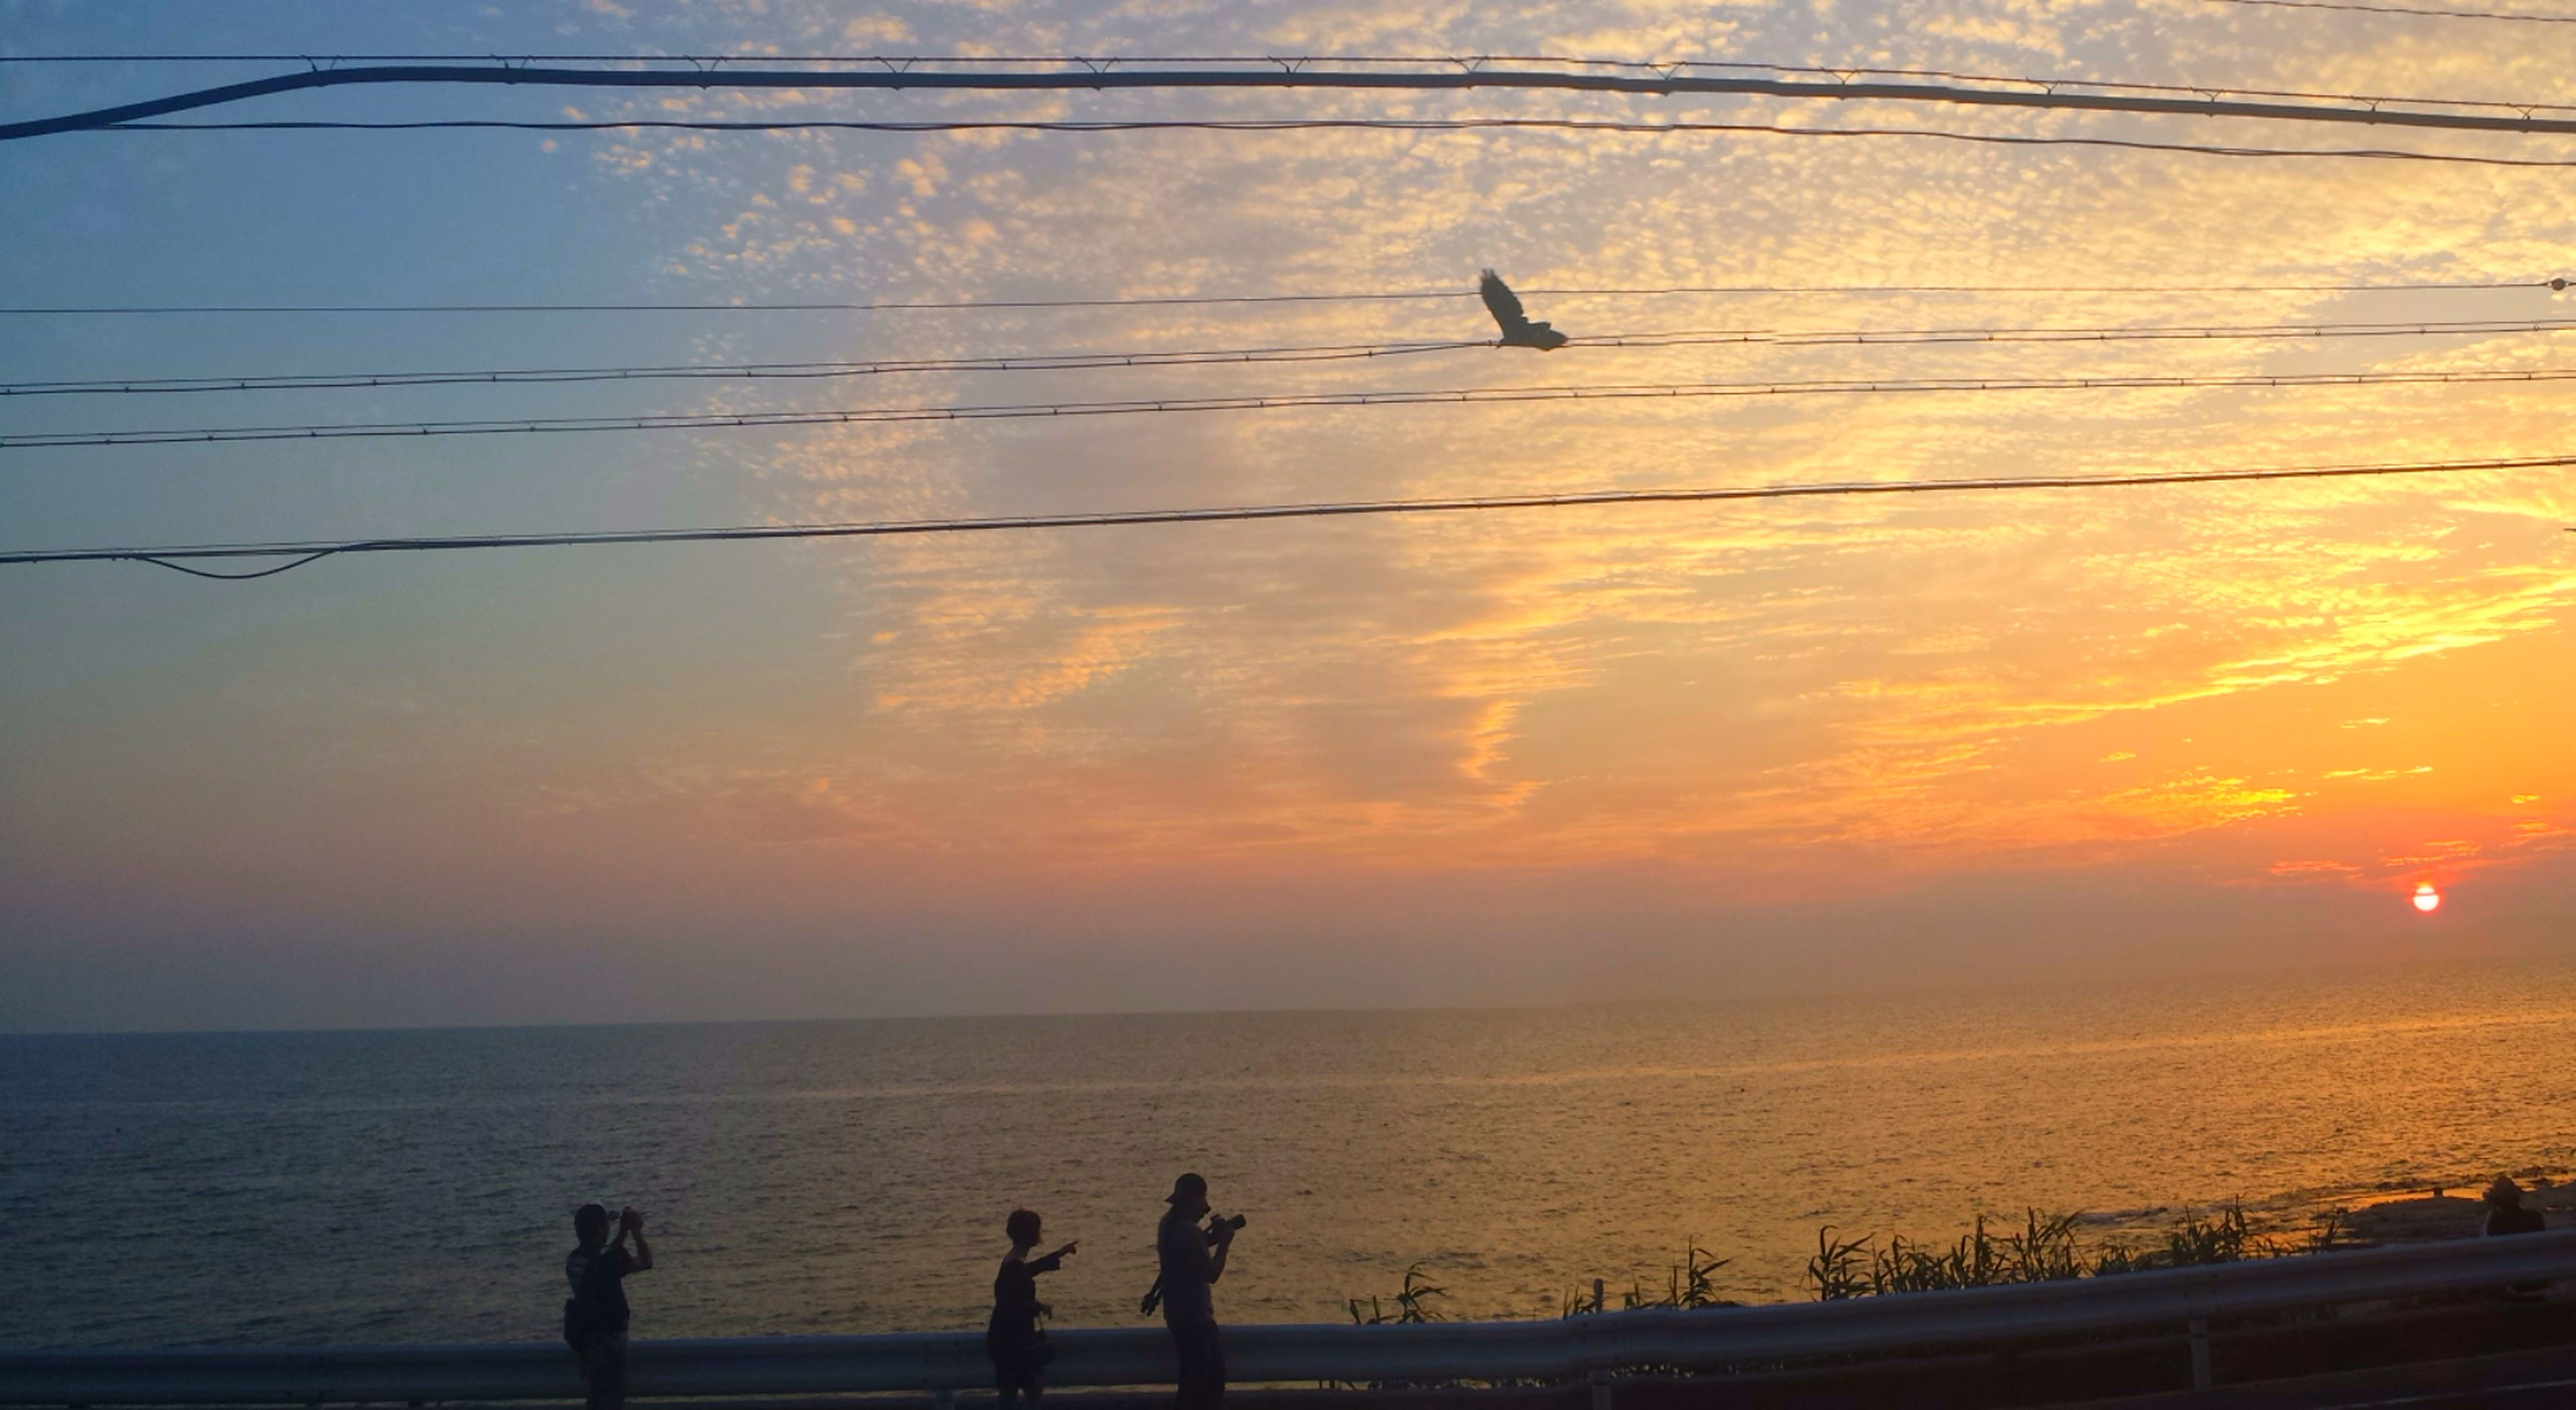 sea, horizon over water, sunset, water, silhouette, sky, scenics, beauty in nature, bird, tranquility, tranquil scene, nature, beach, orange color, idyllic, cloud - sky, shore, animal themes, unrecognizable person